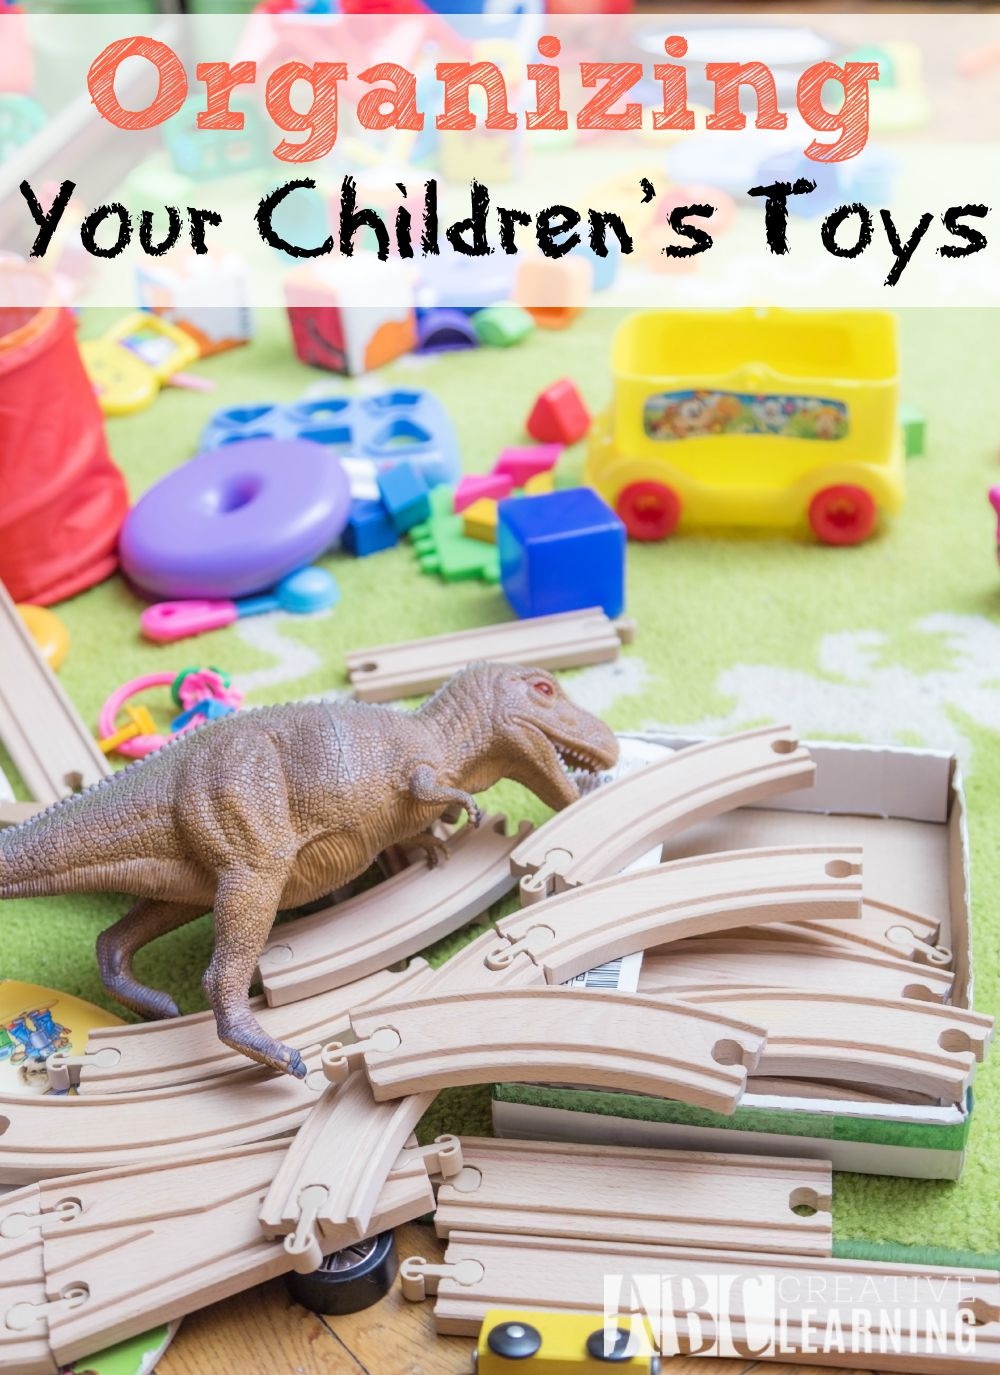 Organizing Your Children's Toys